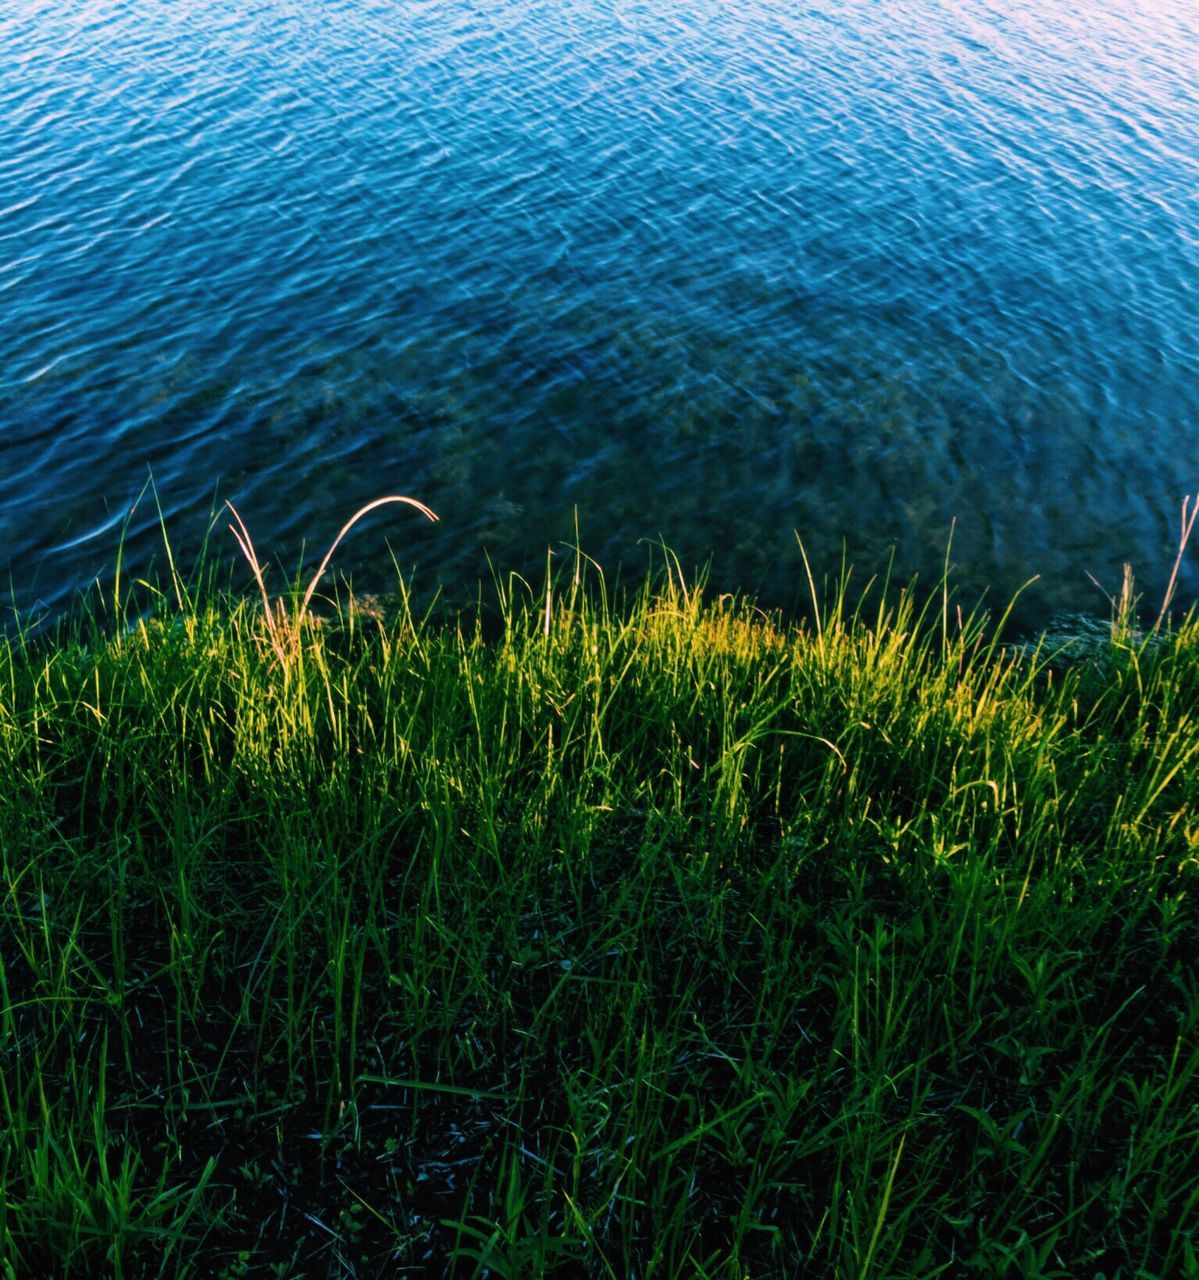 nature, grass, water, growth, tranquility, rippled, beauty in nature, outdoors, day, no people